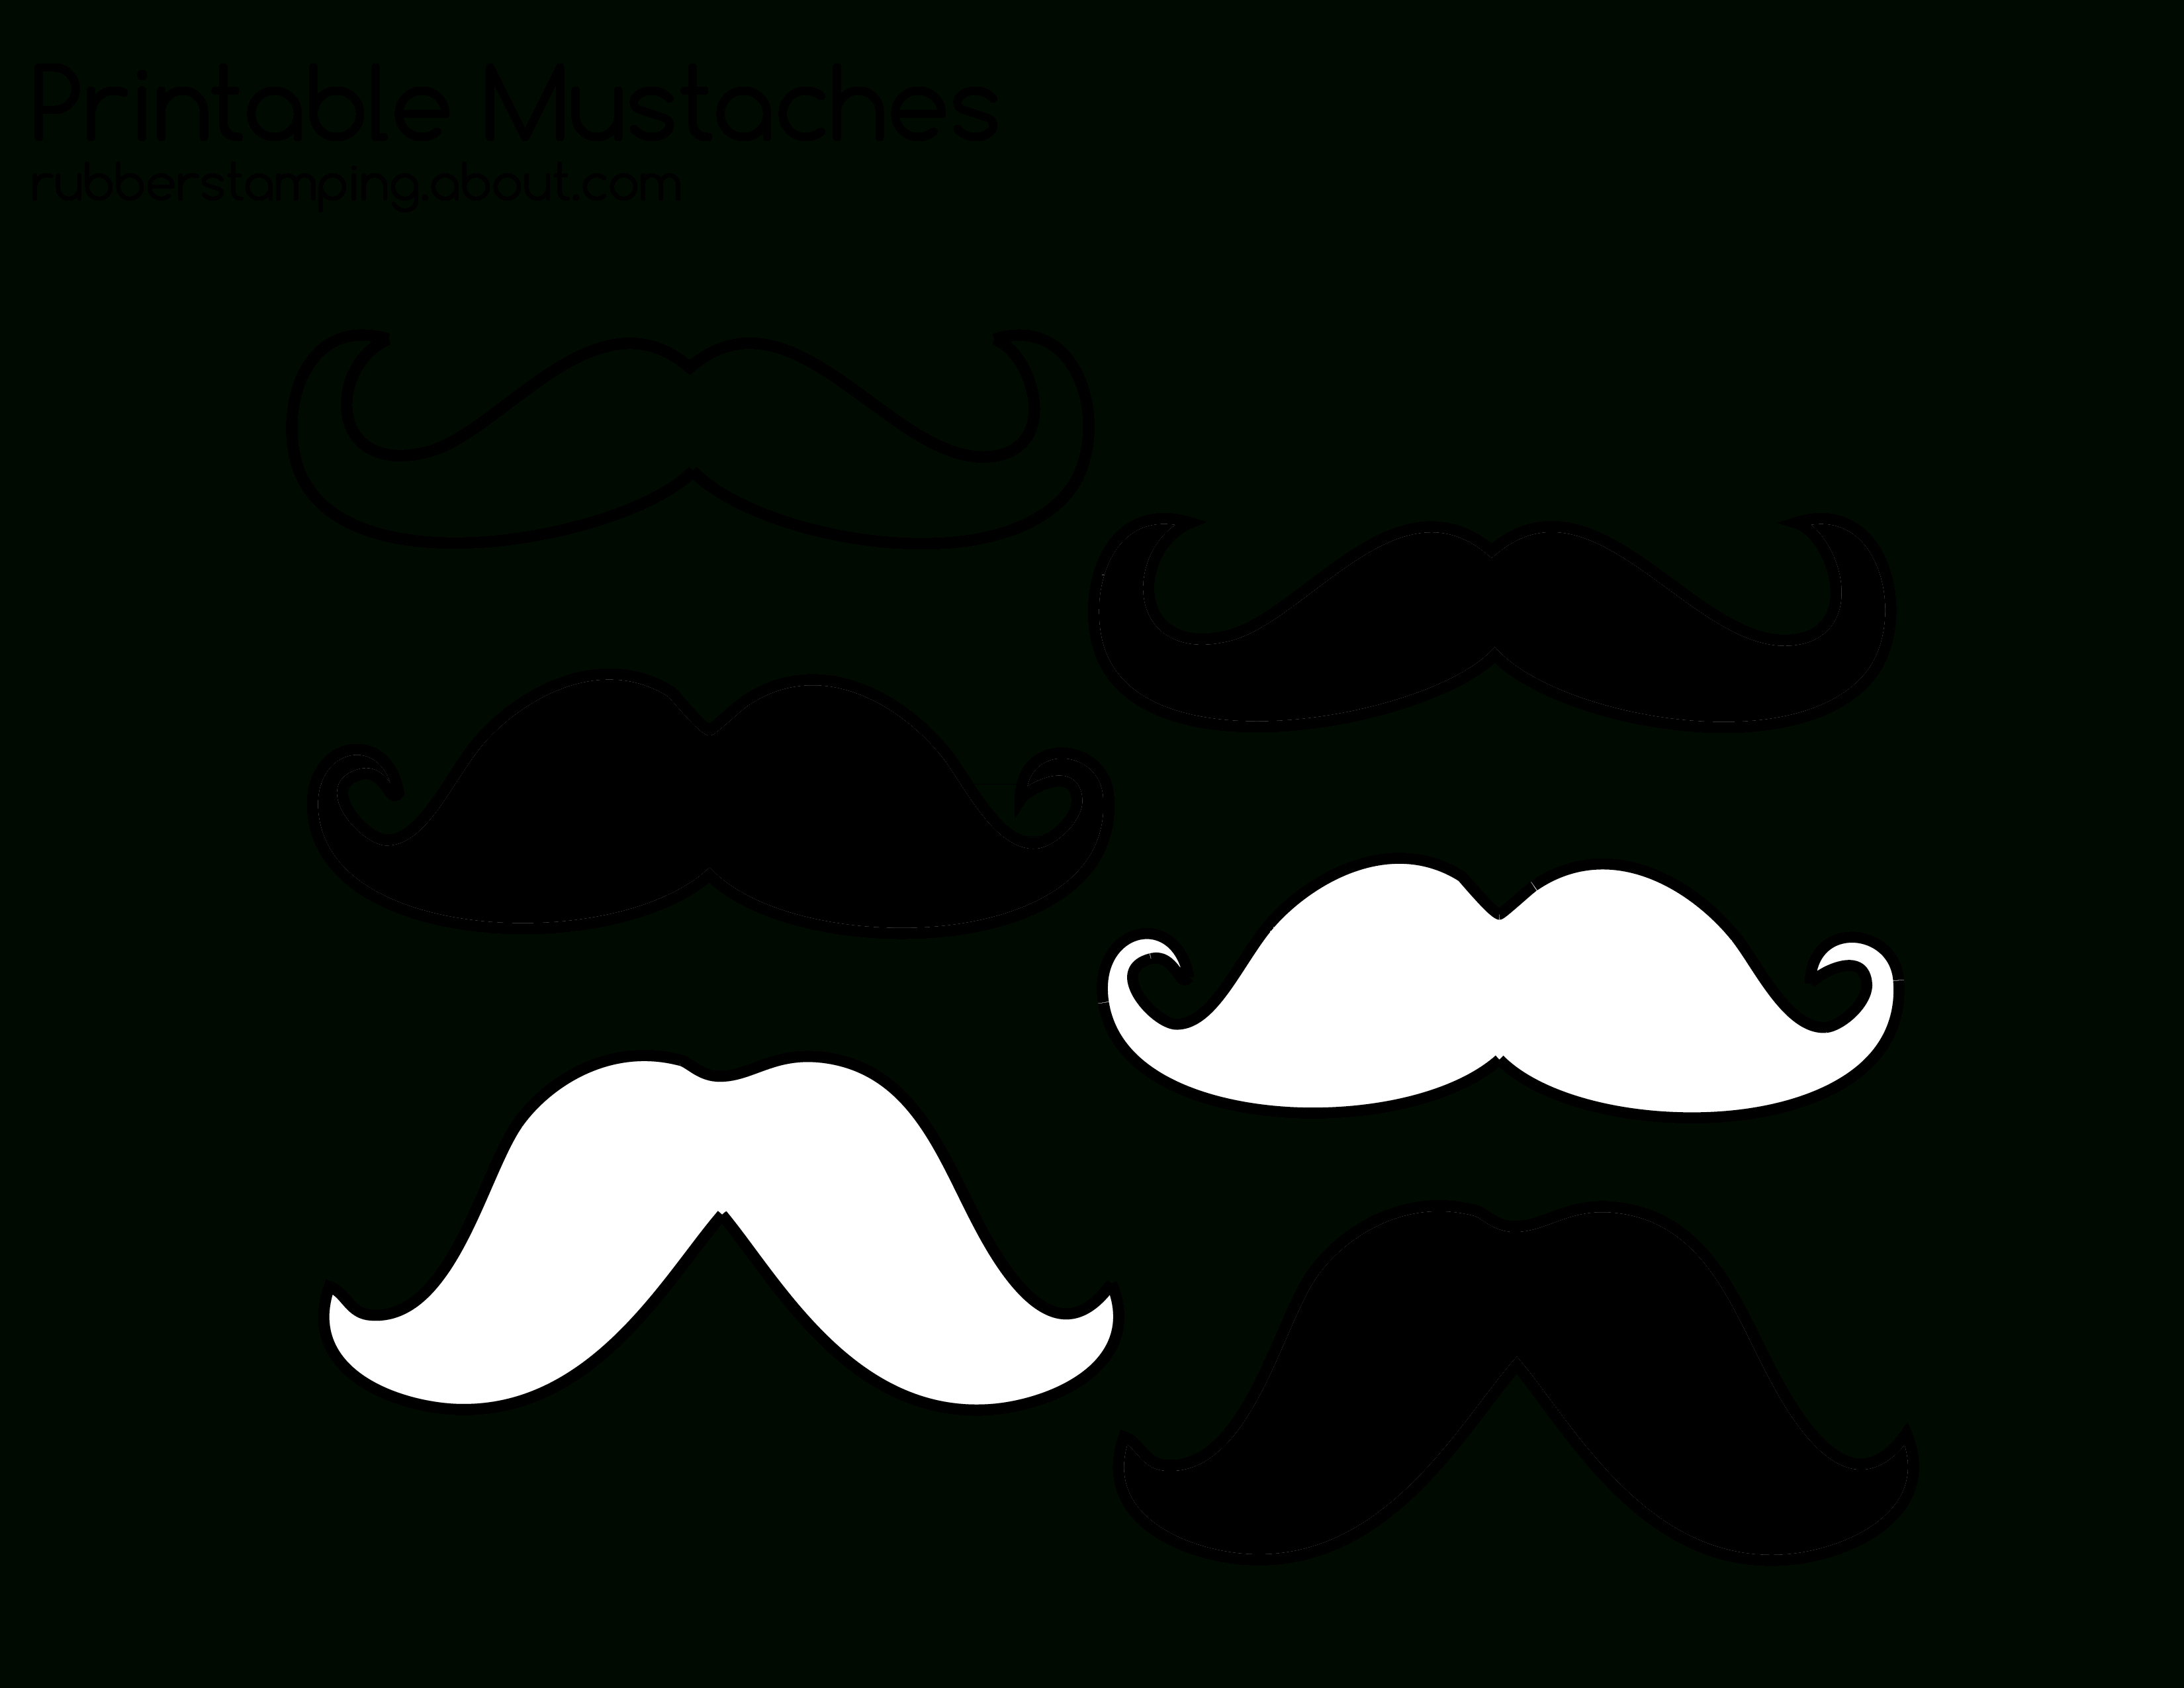 Free Printable Mustache Images | Diy | Mustache Crafts, Mustache - Free Printable Mustache